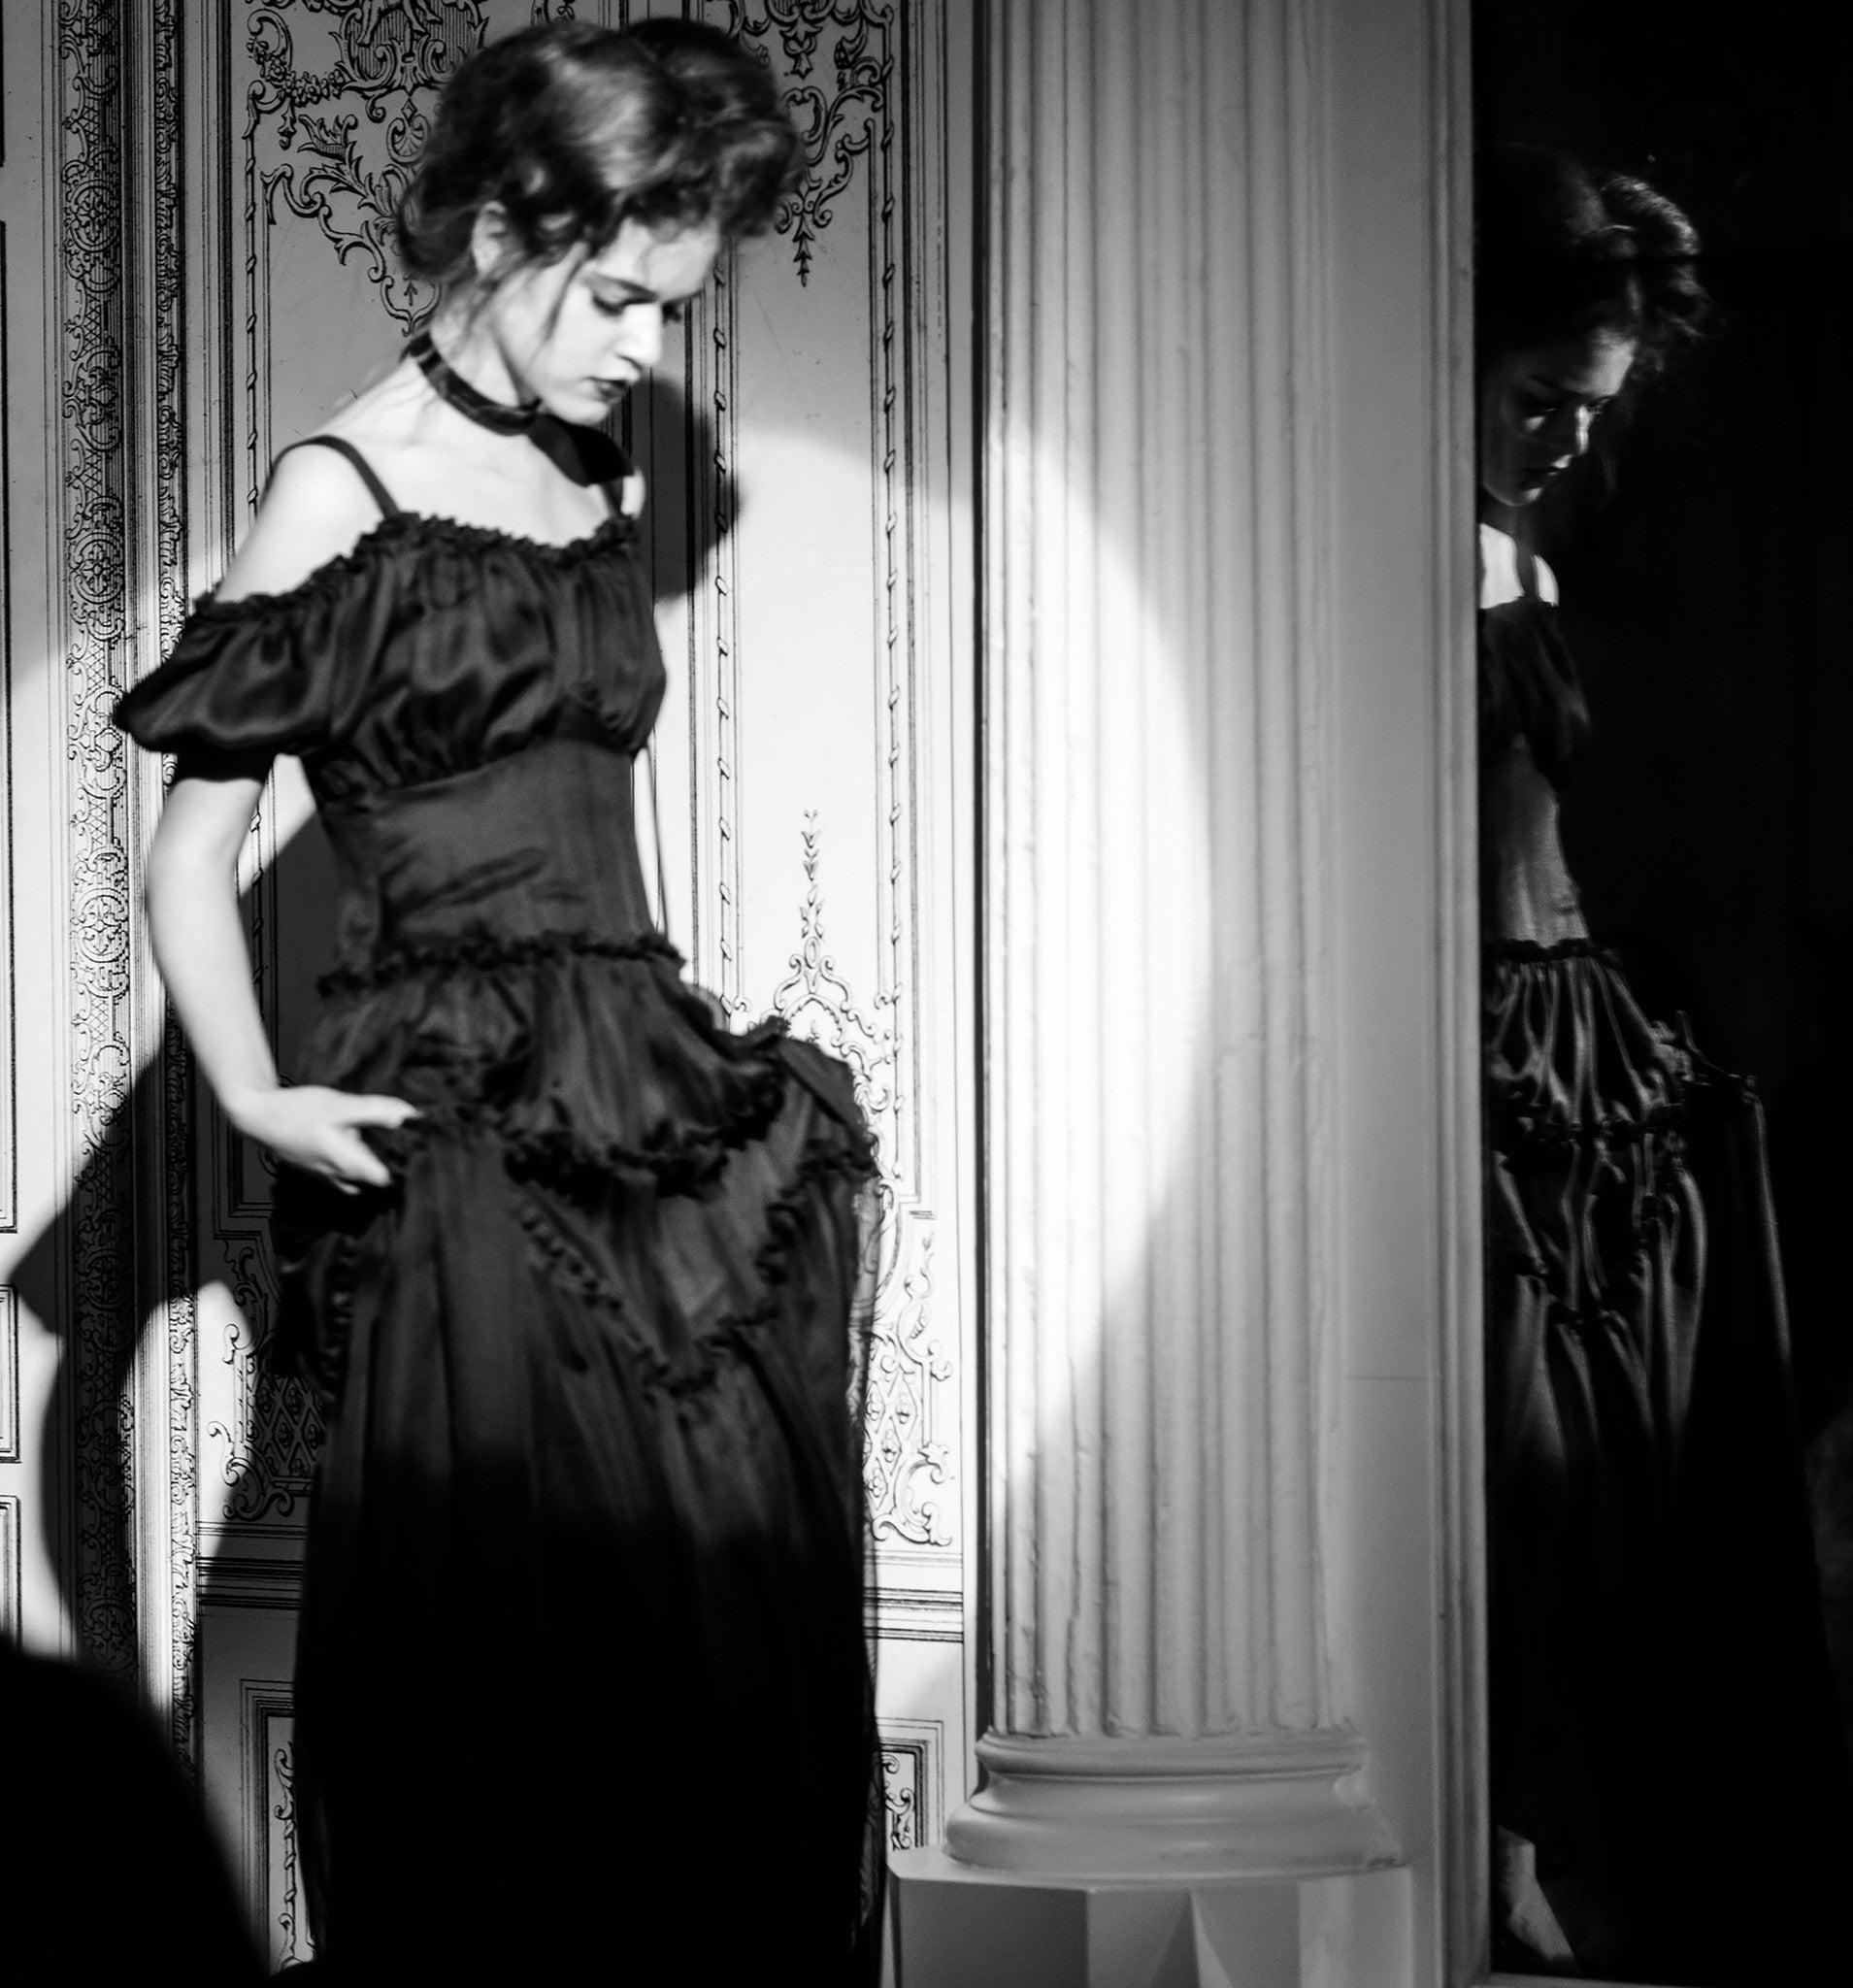 Wendy Nichol Fashion Runway Show Carl Jung The Orphan Gown Black layers of Silk off the shoulder  IMG Model Wendy Nichol Clothing Fashion Designer Handmade in NYC AW14 Ready to Wear Fashion Runway Show Custom Tailoring Made to Measure